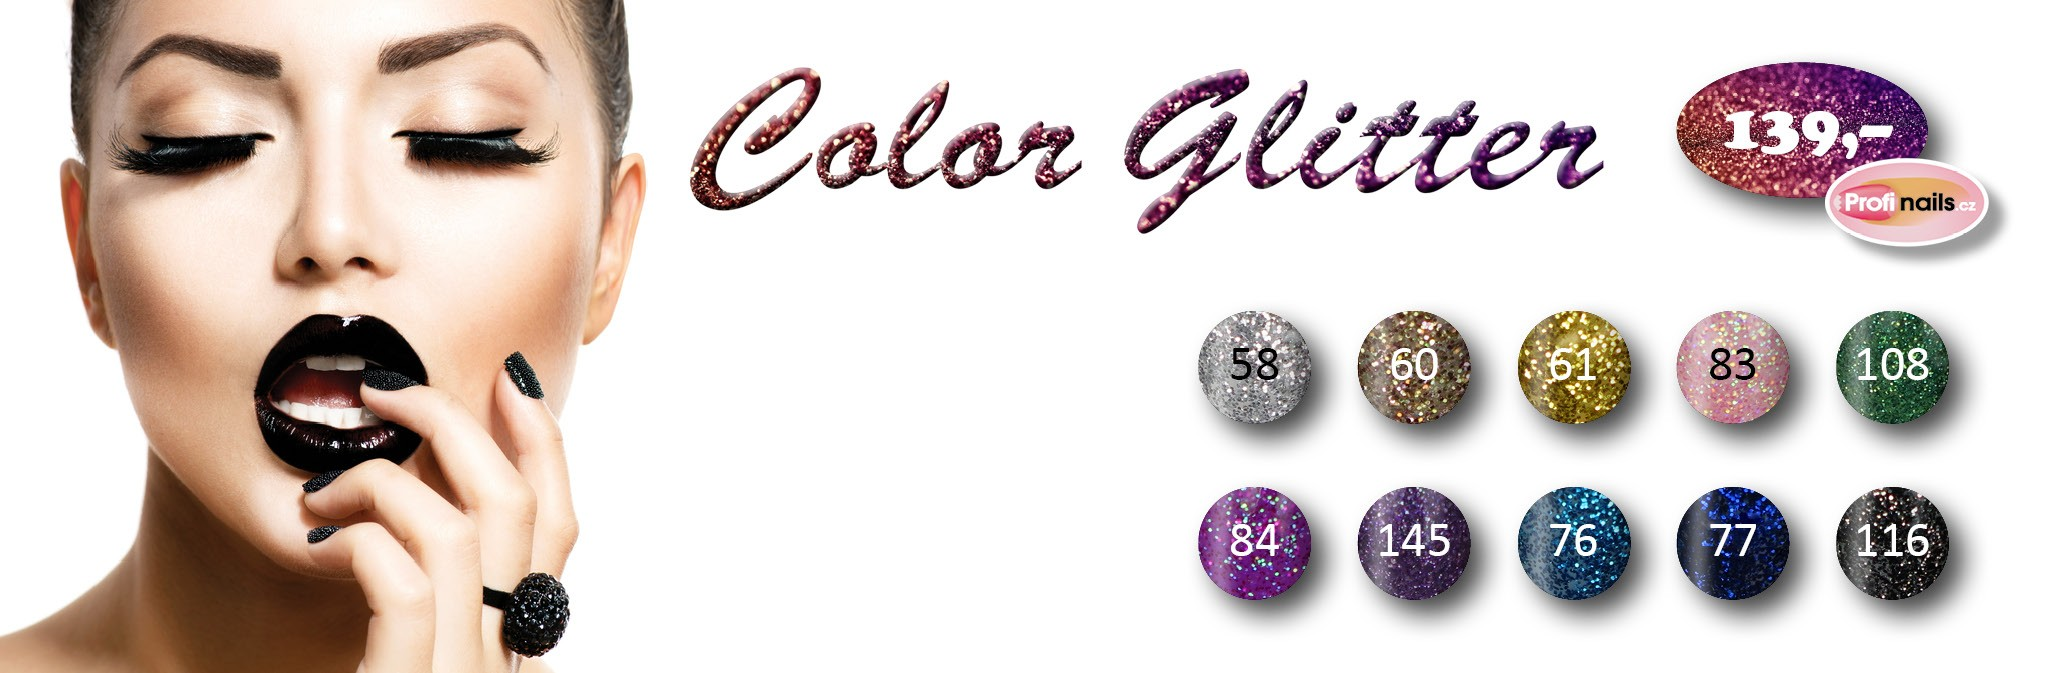 Color Gel Glitter